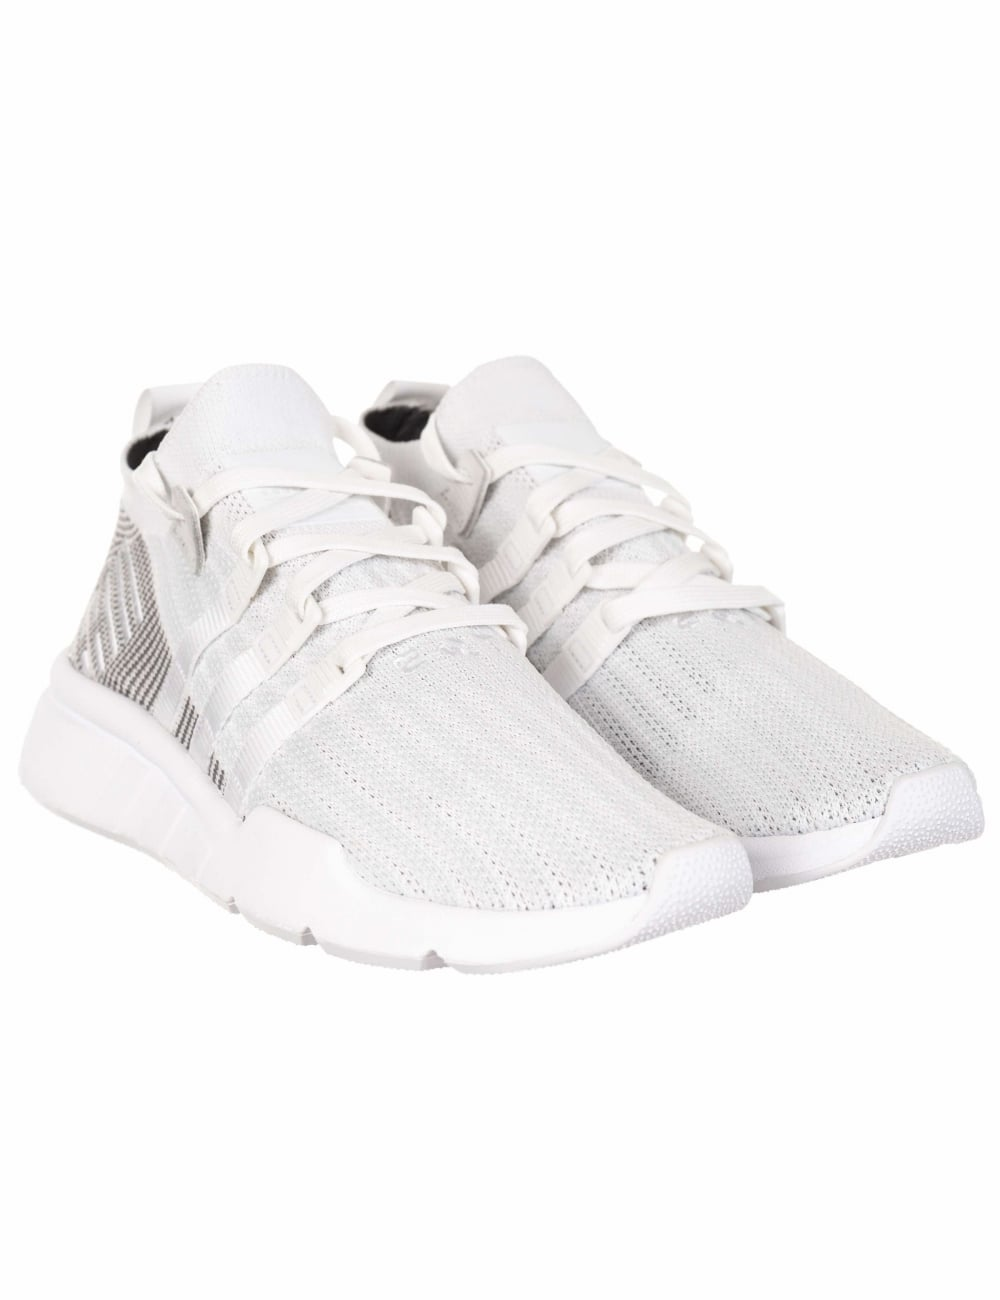 9efe0880 EQT Support Mid ADV Primeknit Trainers - Mid White/Grey